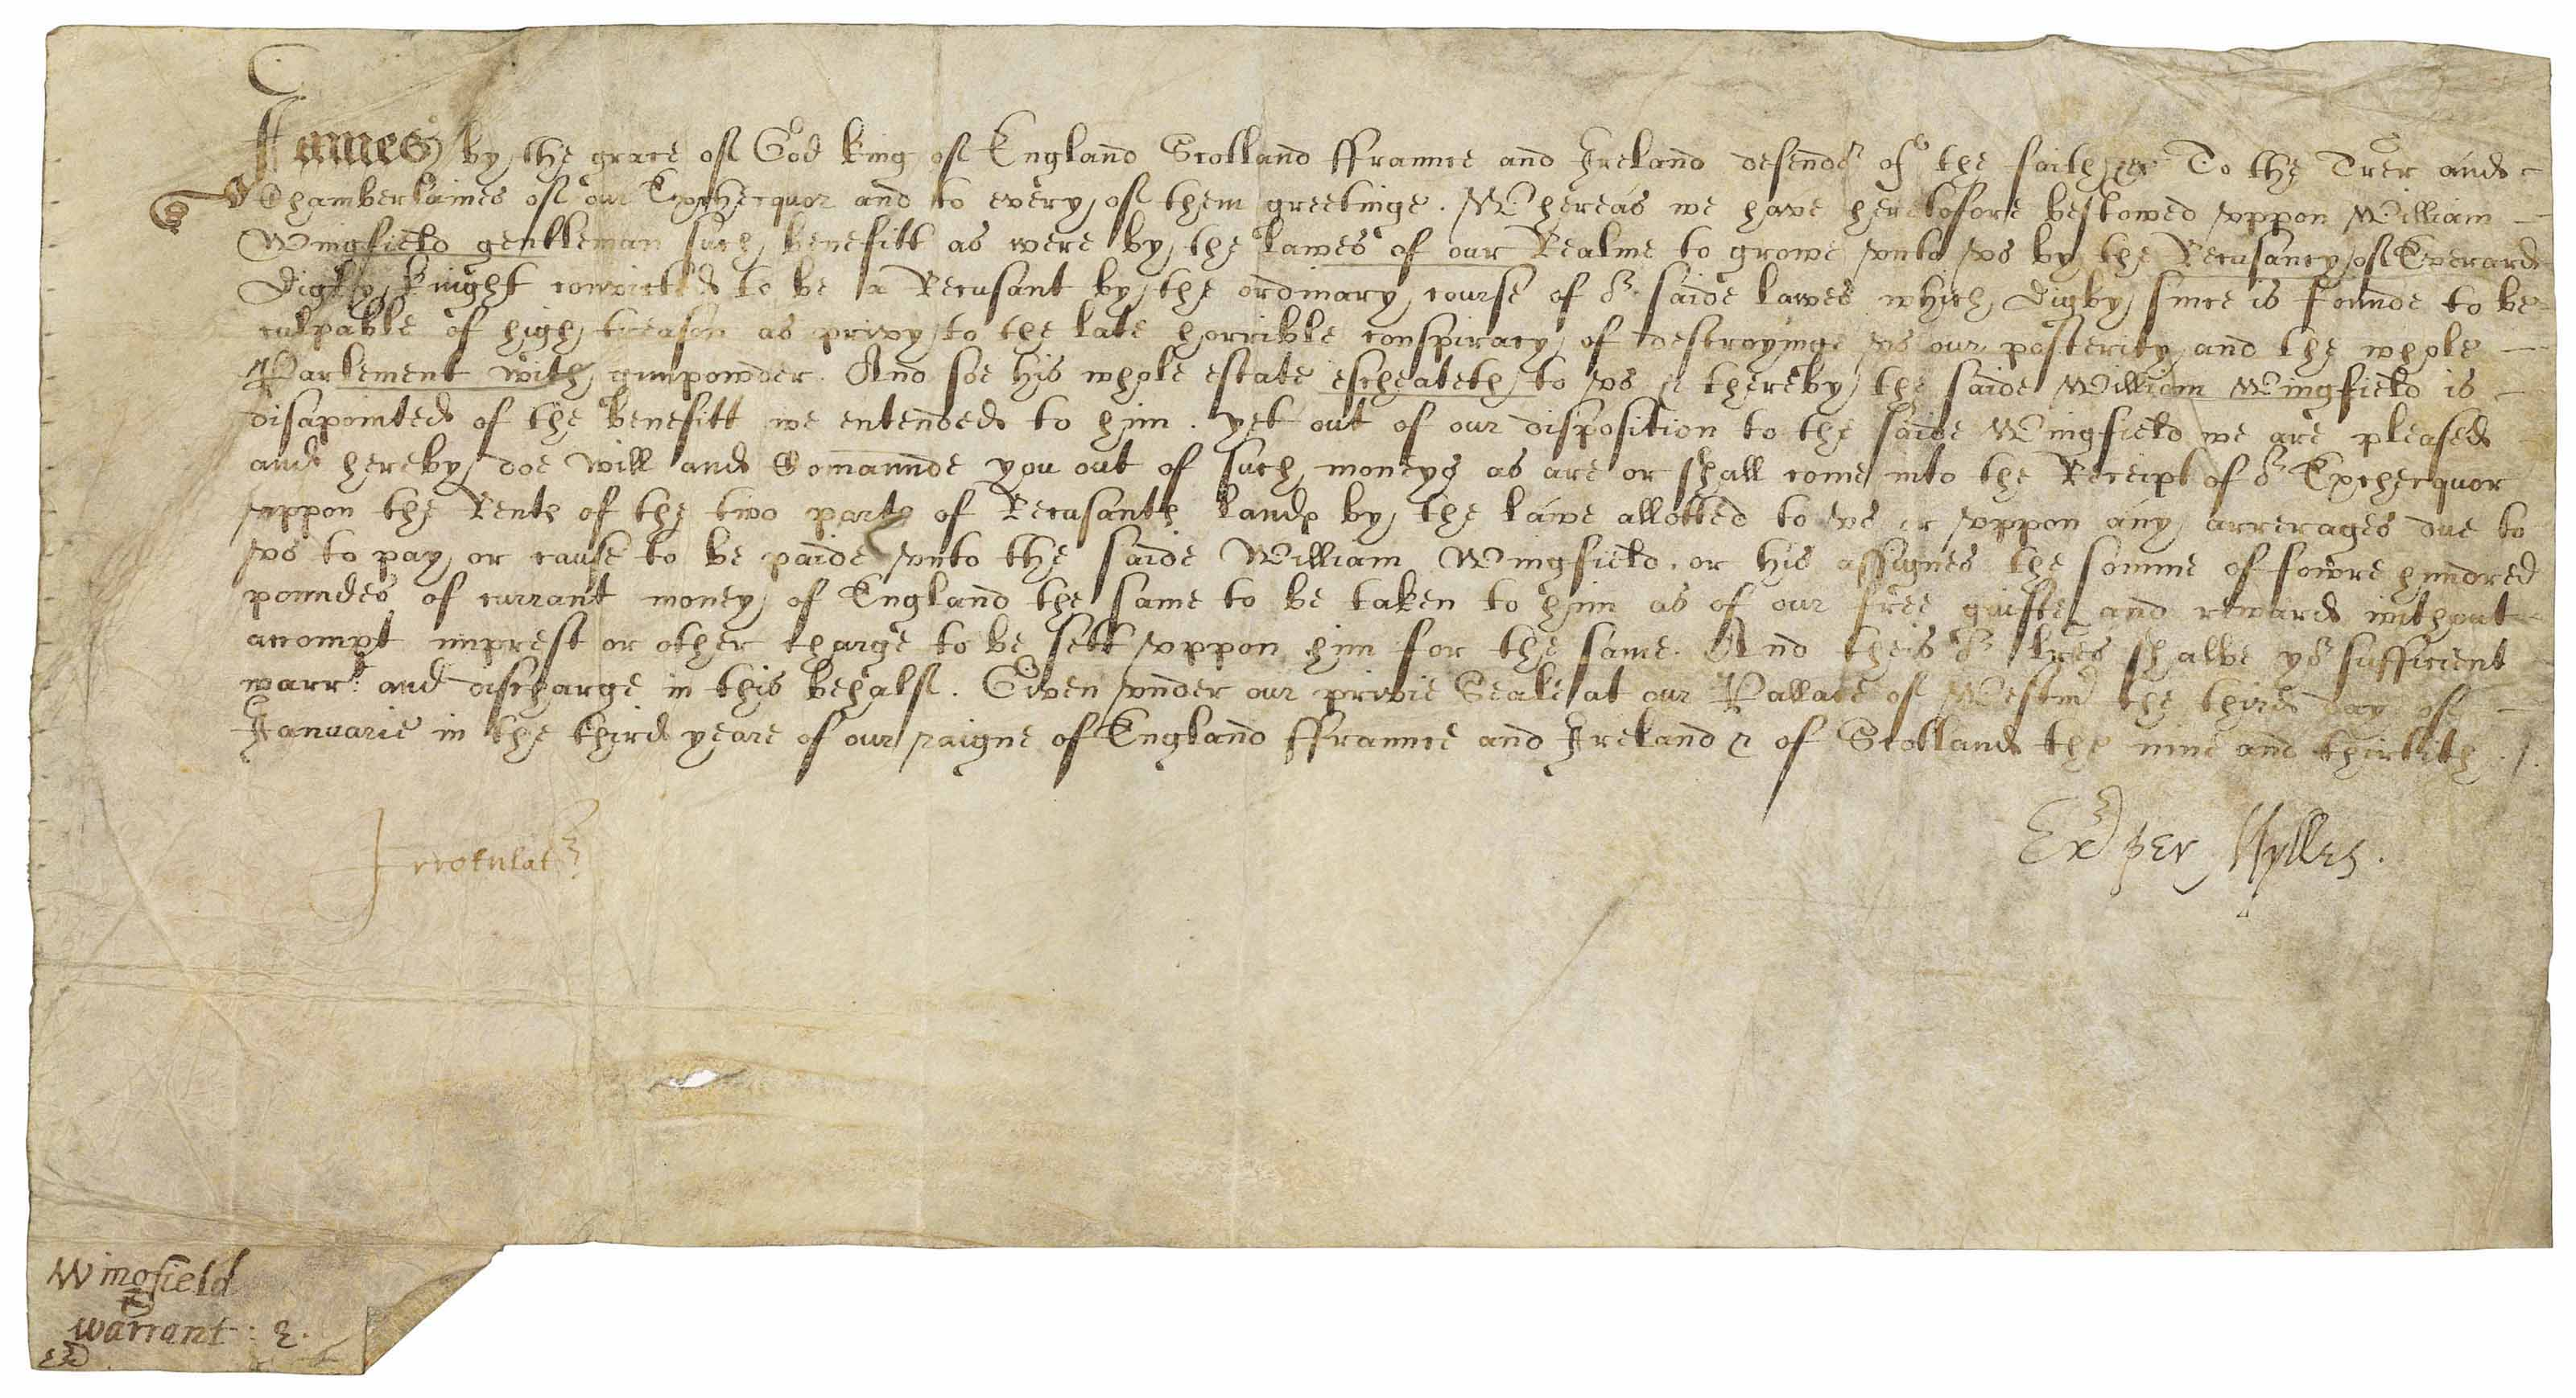 JAMES VI & I (1566-1625), King of Scotland, England and Ireland. Letter under the privy seal to the Treasurer and Chamberlains of the Exchequer, Westminster, 3 January 1605/06.